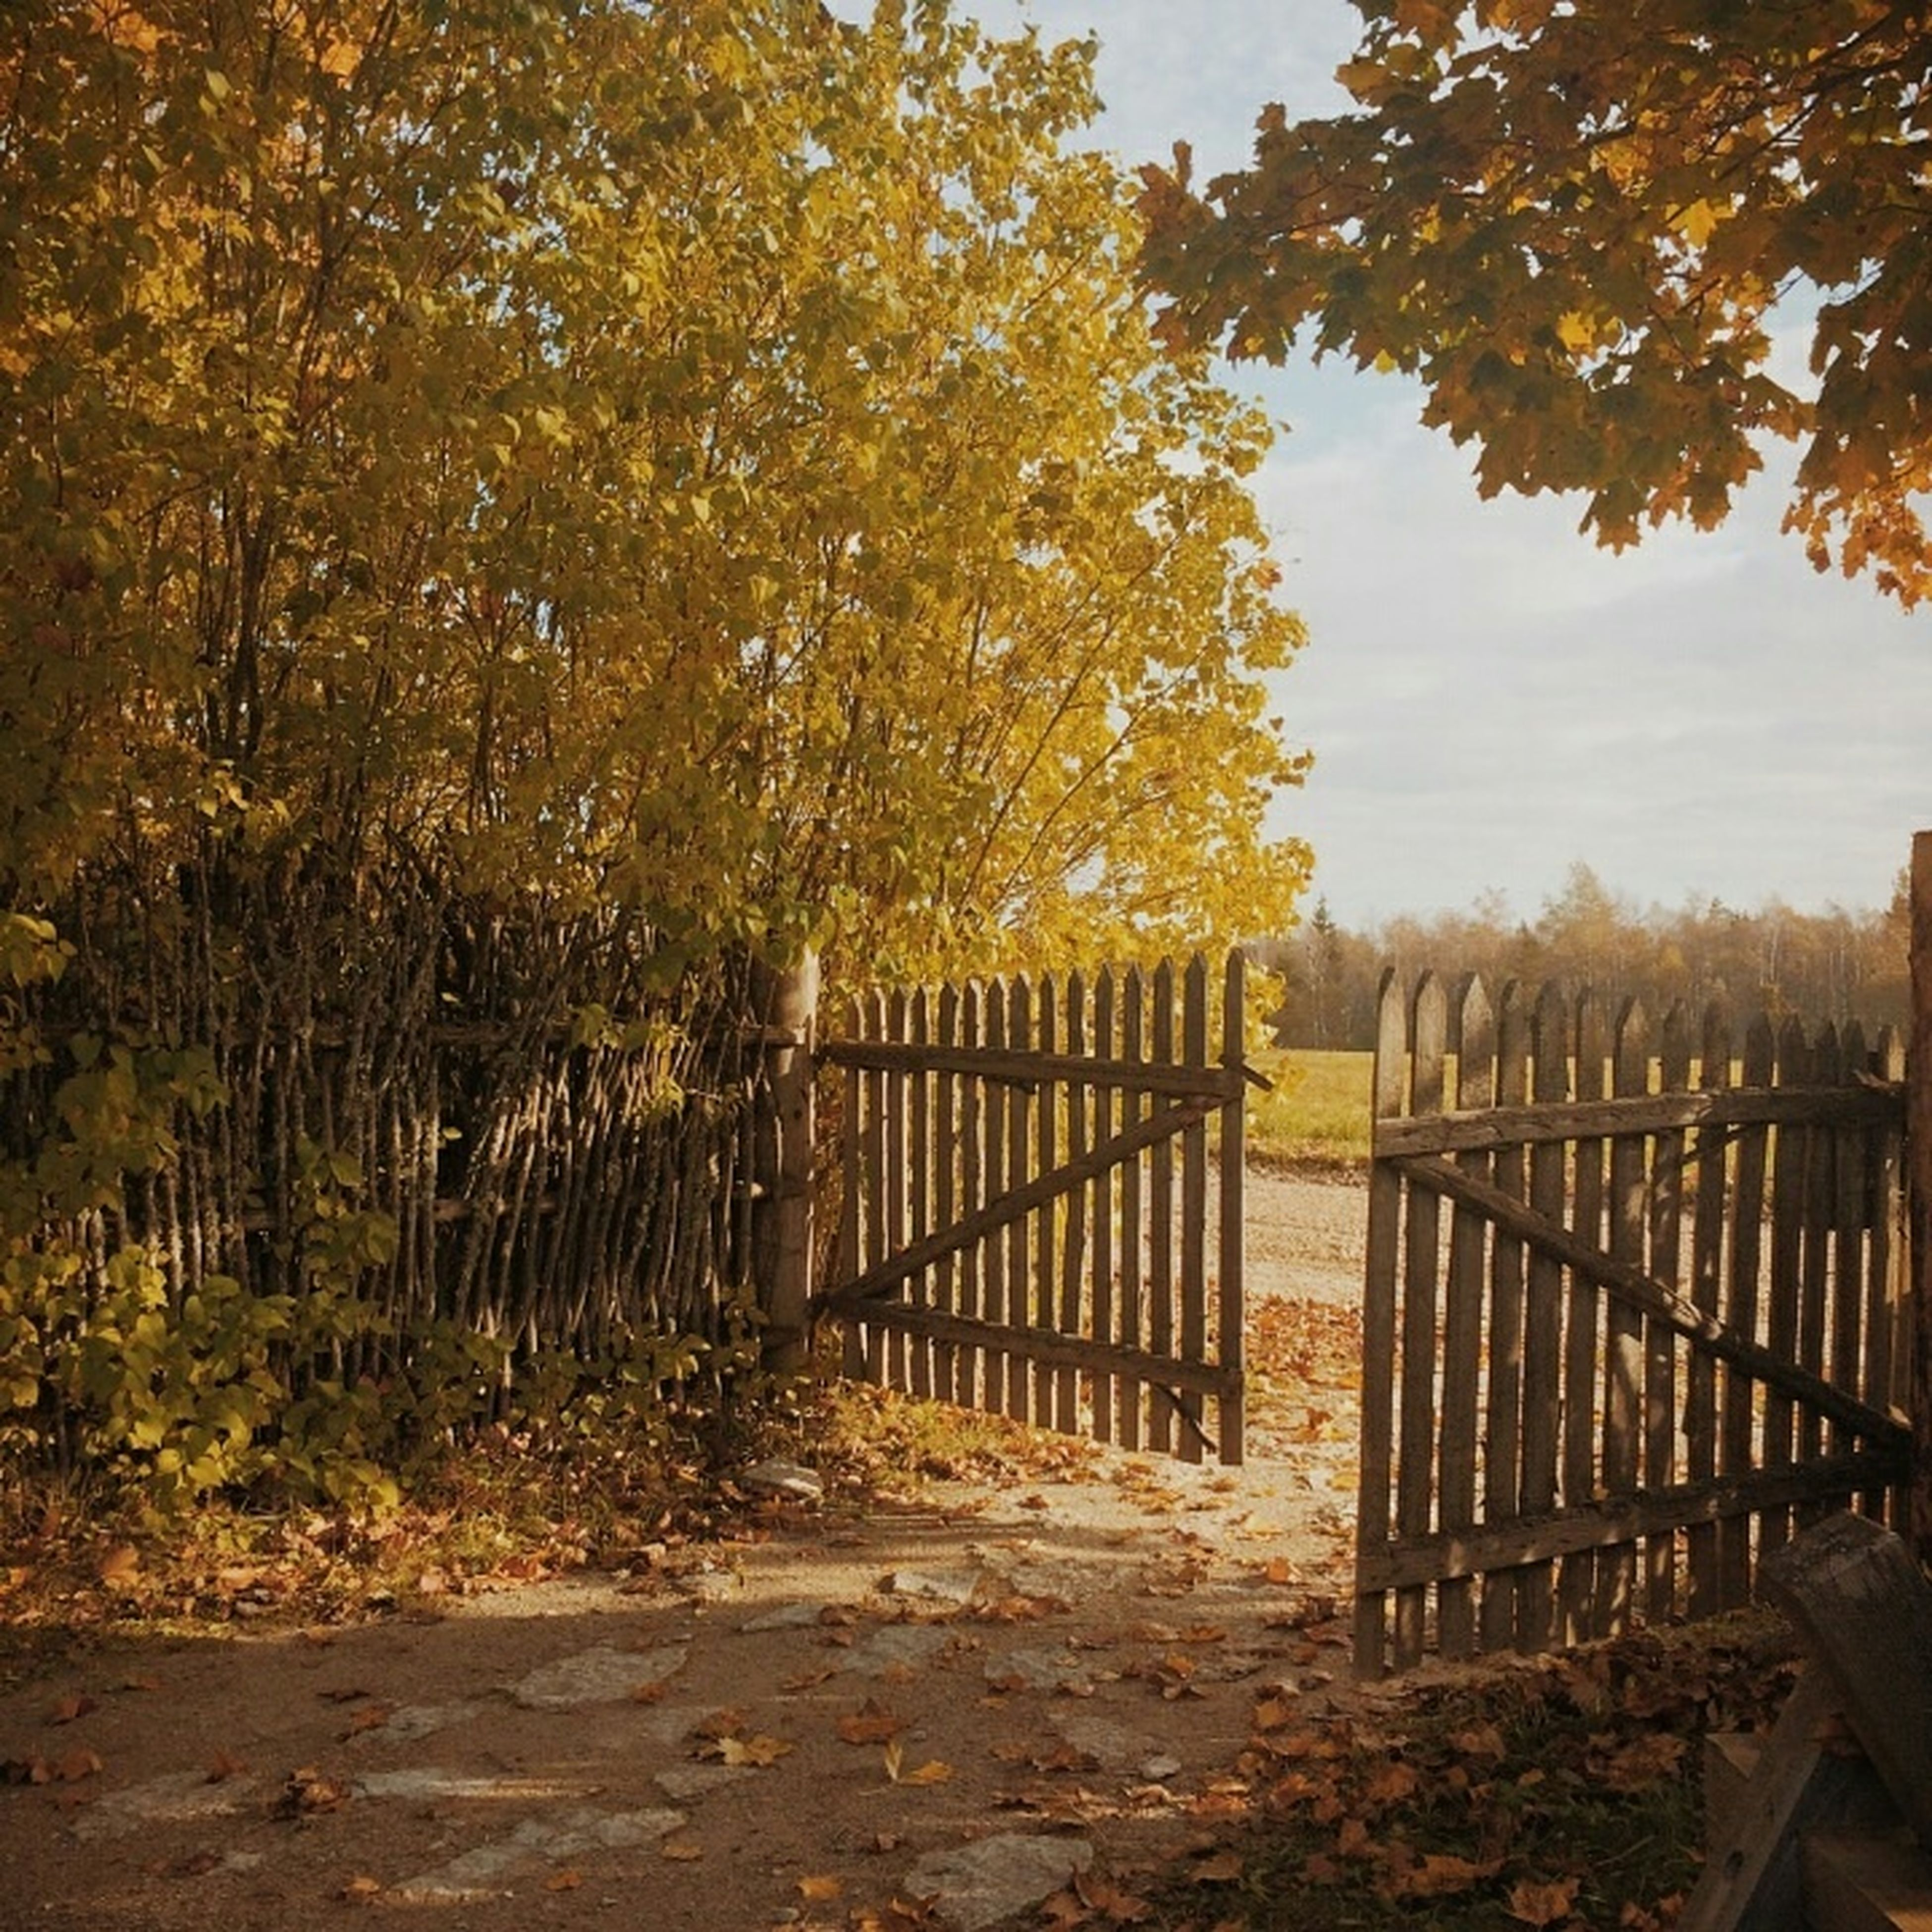 fence, railing, tree, safety, protection, tranquility, nature, tranquil scene, security, sky, beauty in nature, wood - material, metal, sunlight, autumn, outdoors, no people, the way forward, scenics, gate